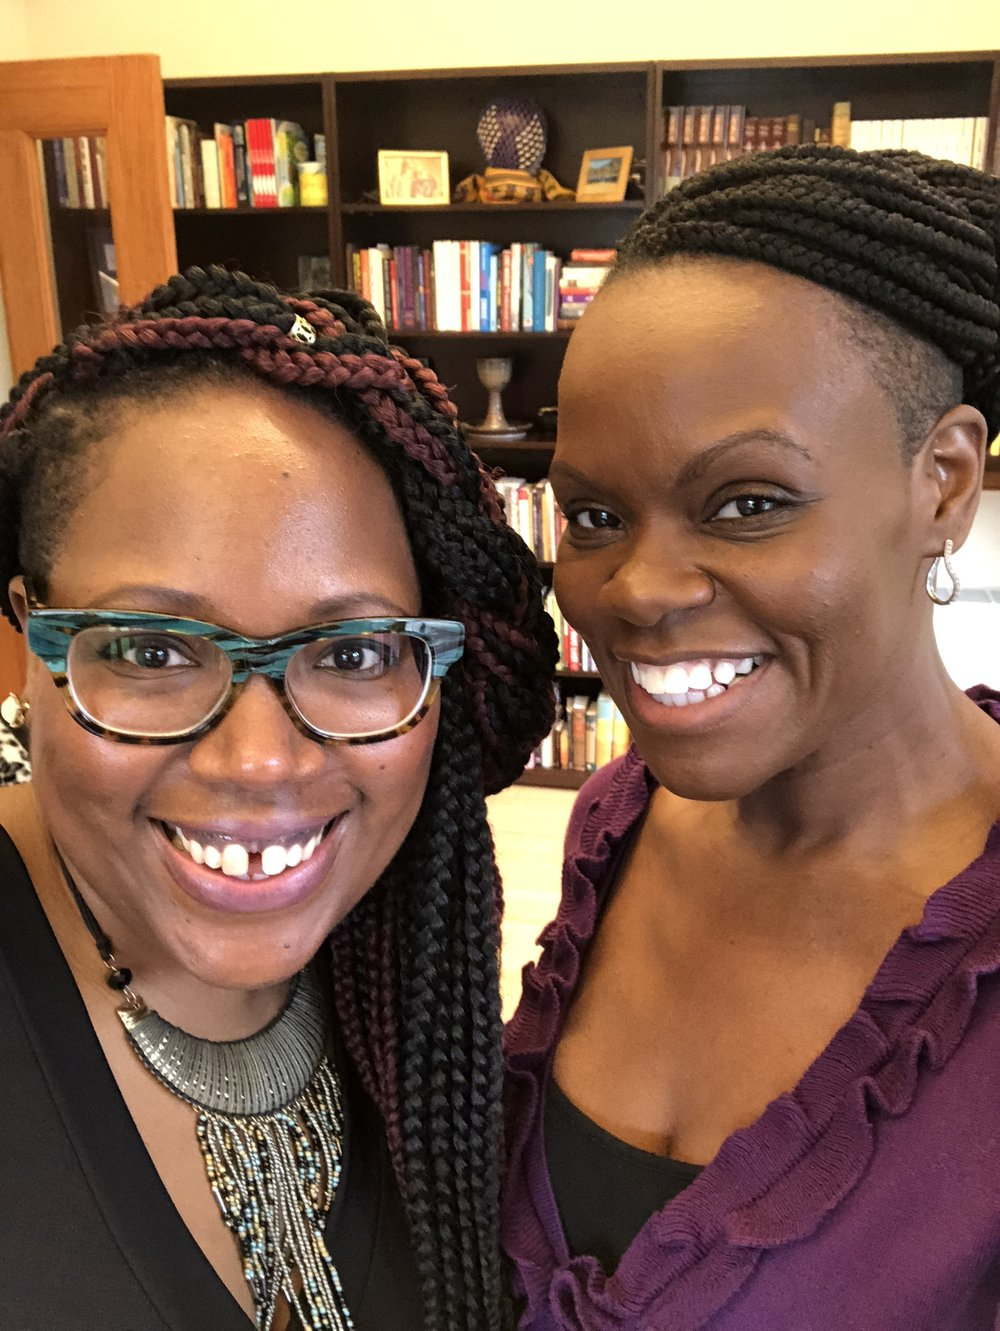 (Btw, Theresa is not simply the Chaplain, she is a fierce, intelligent, beautiful, spiritual, preaching, teaching, Girl Trekking sister who embodies Black Girl Magic and will sprinkle some on you if you are ever in her presence.)